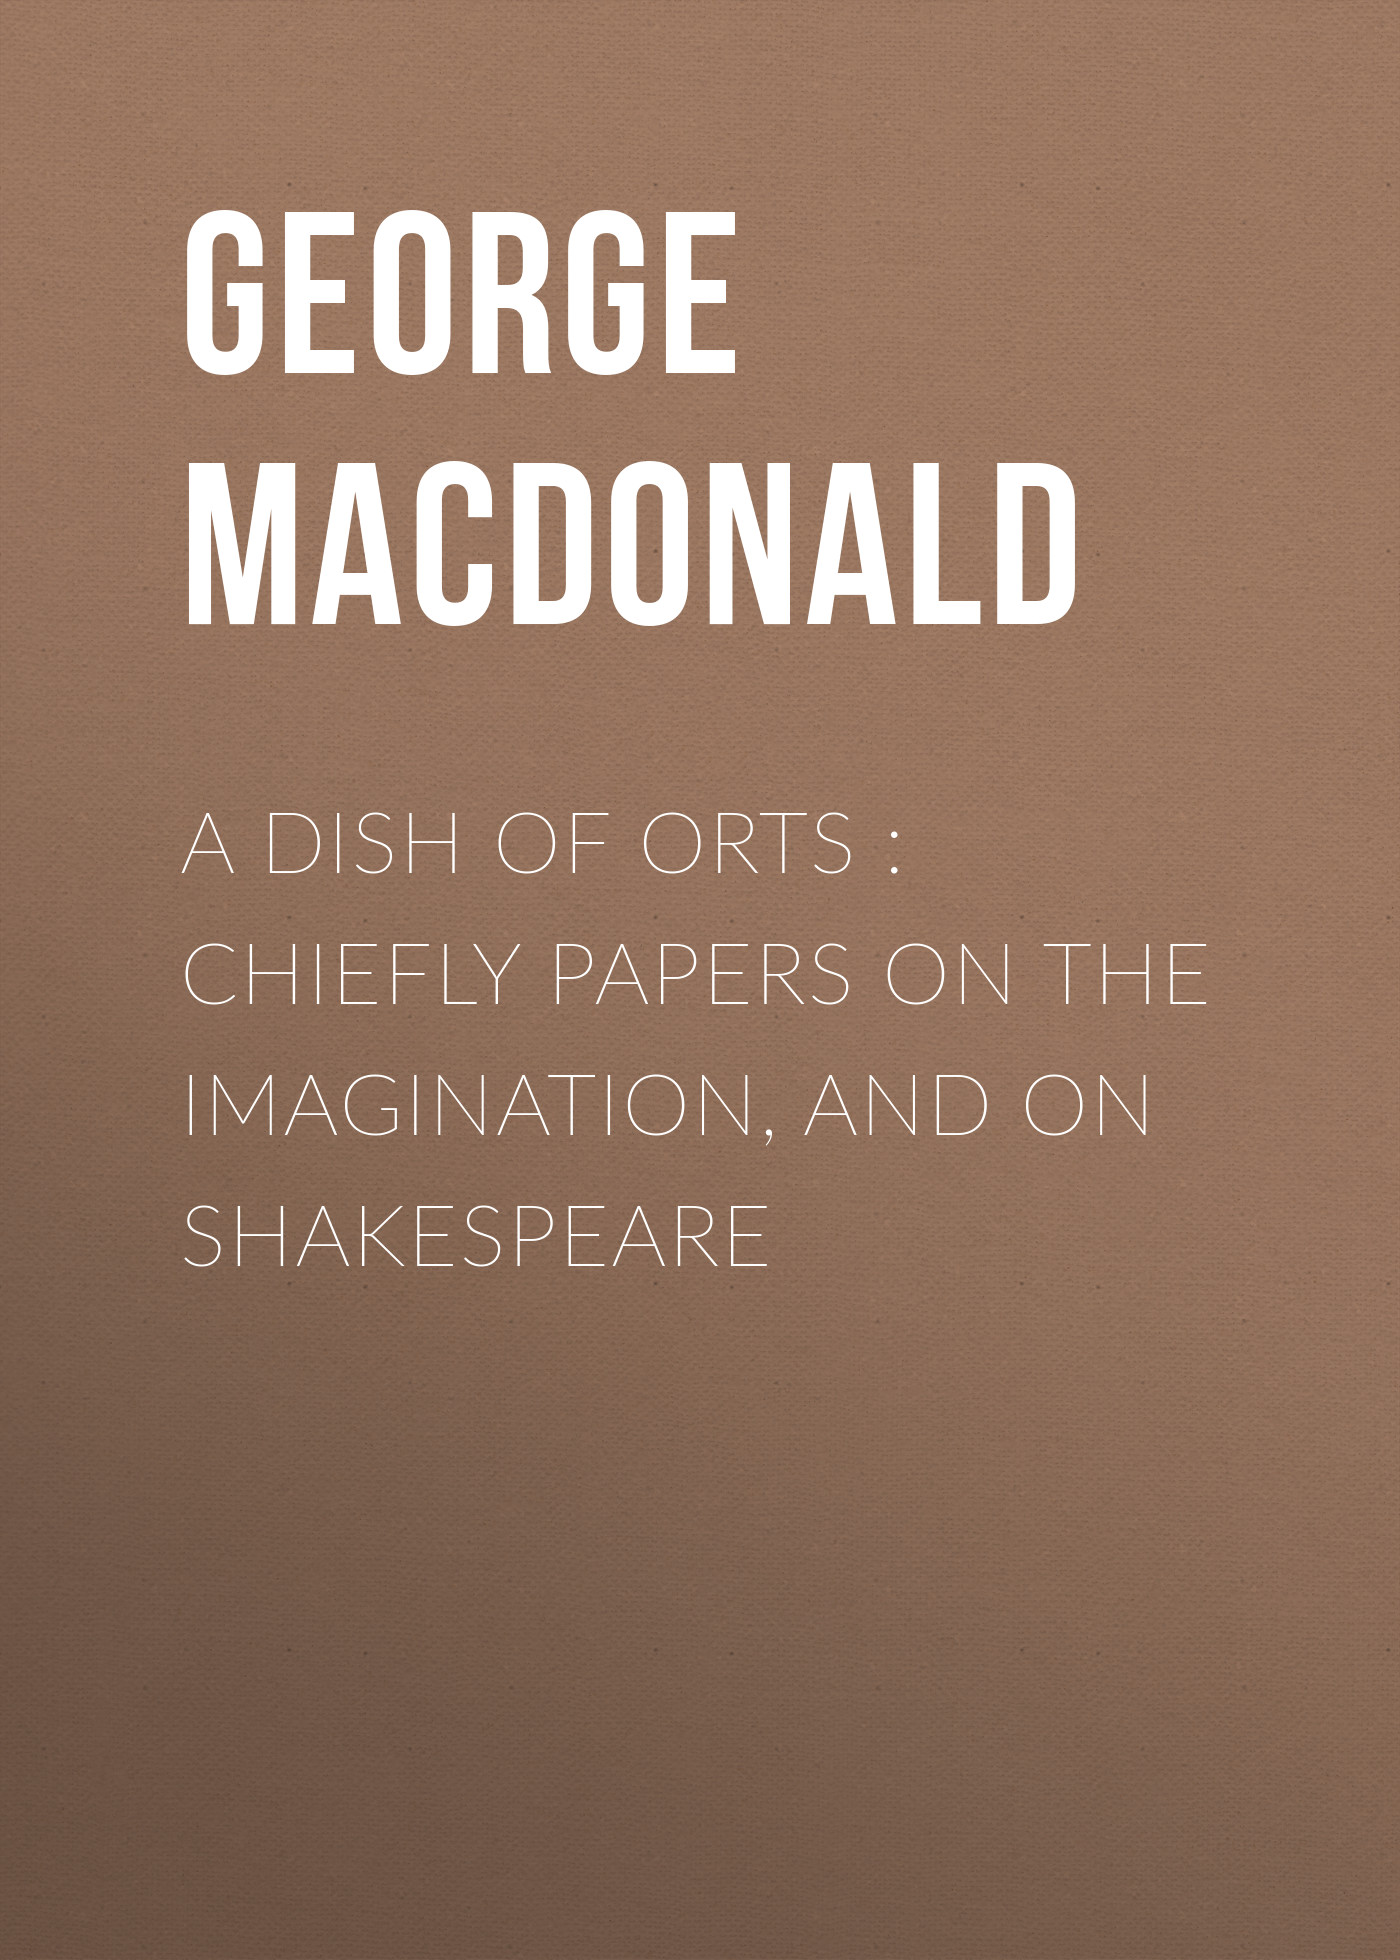 George MacDonald A Dish of Orts : Chiefly Papers on the Imagination, and on Shakespeare cliffsnotes® on shakespeare s henry v